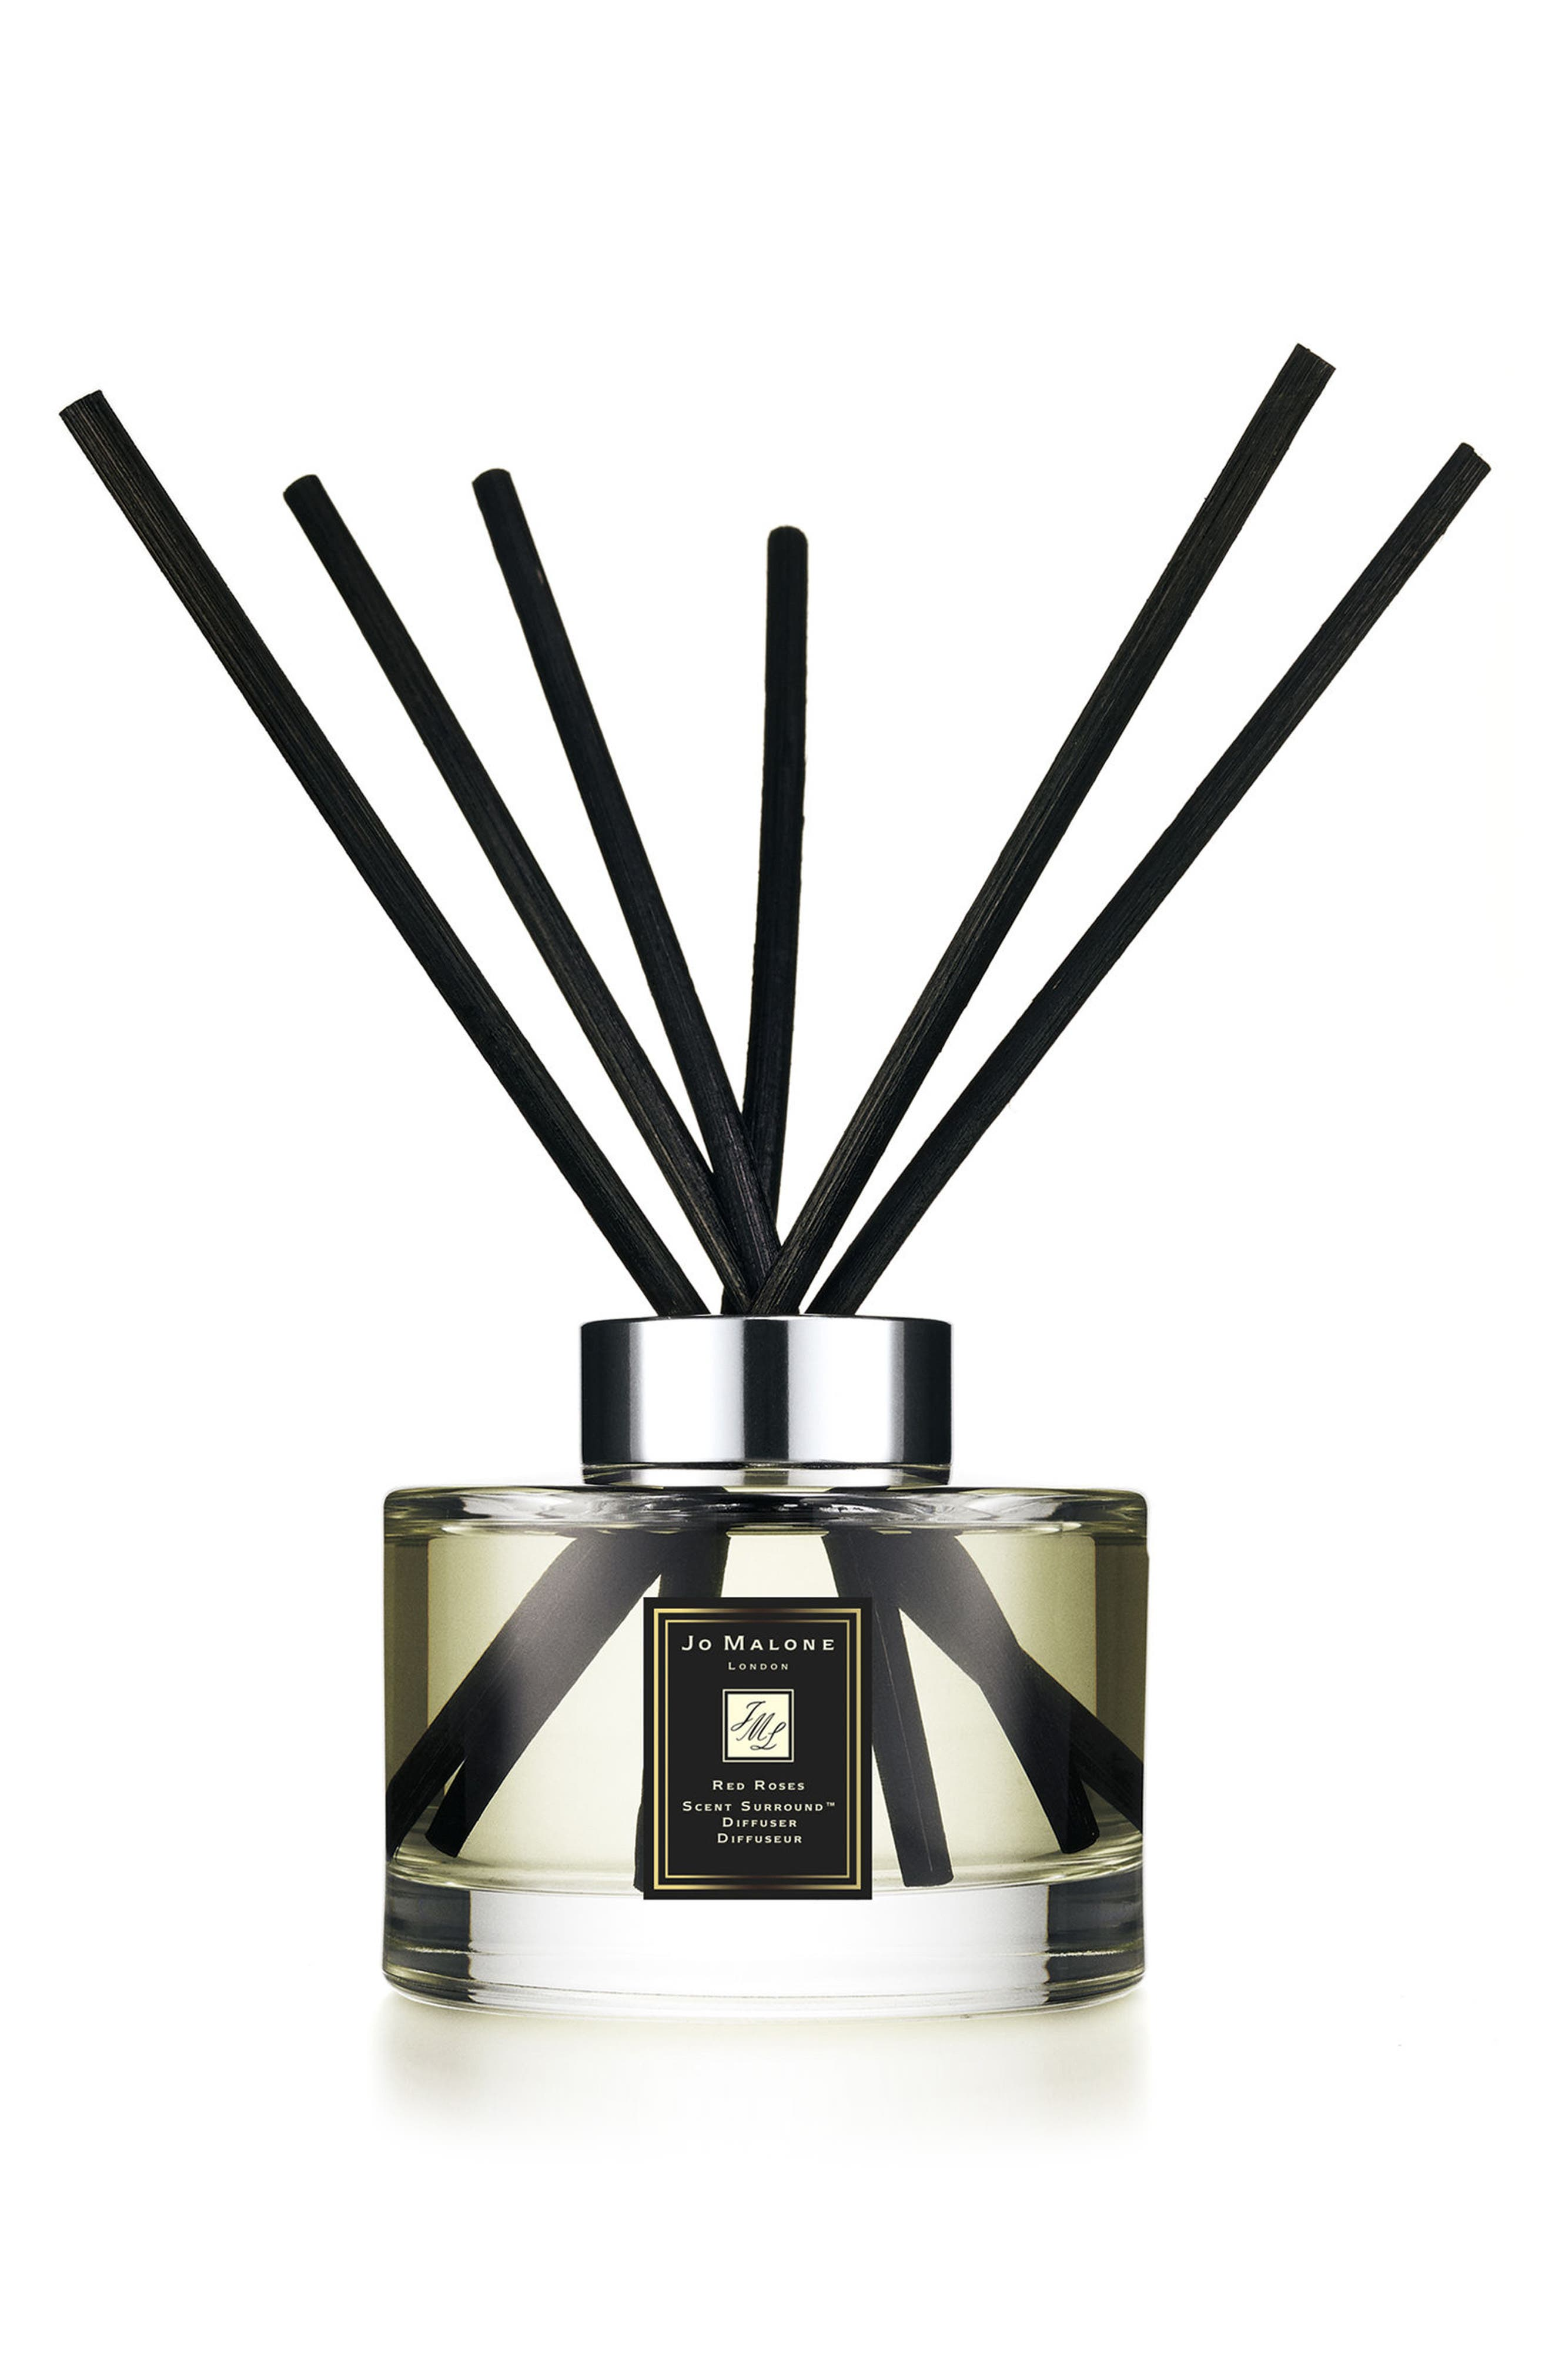 Jo Malone<sup>™</sup> Red Roses Scent Surround Diffuser,                         Main,                         color, NO COLOR